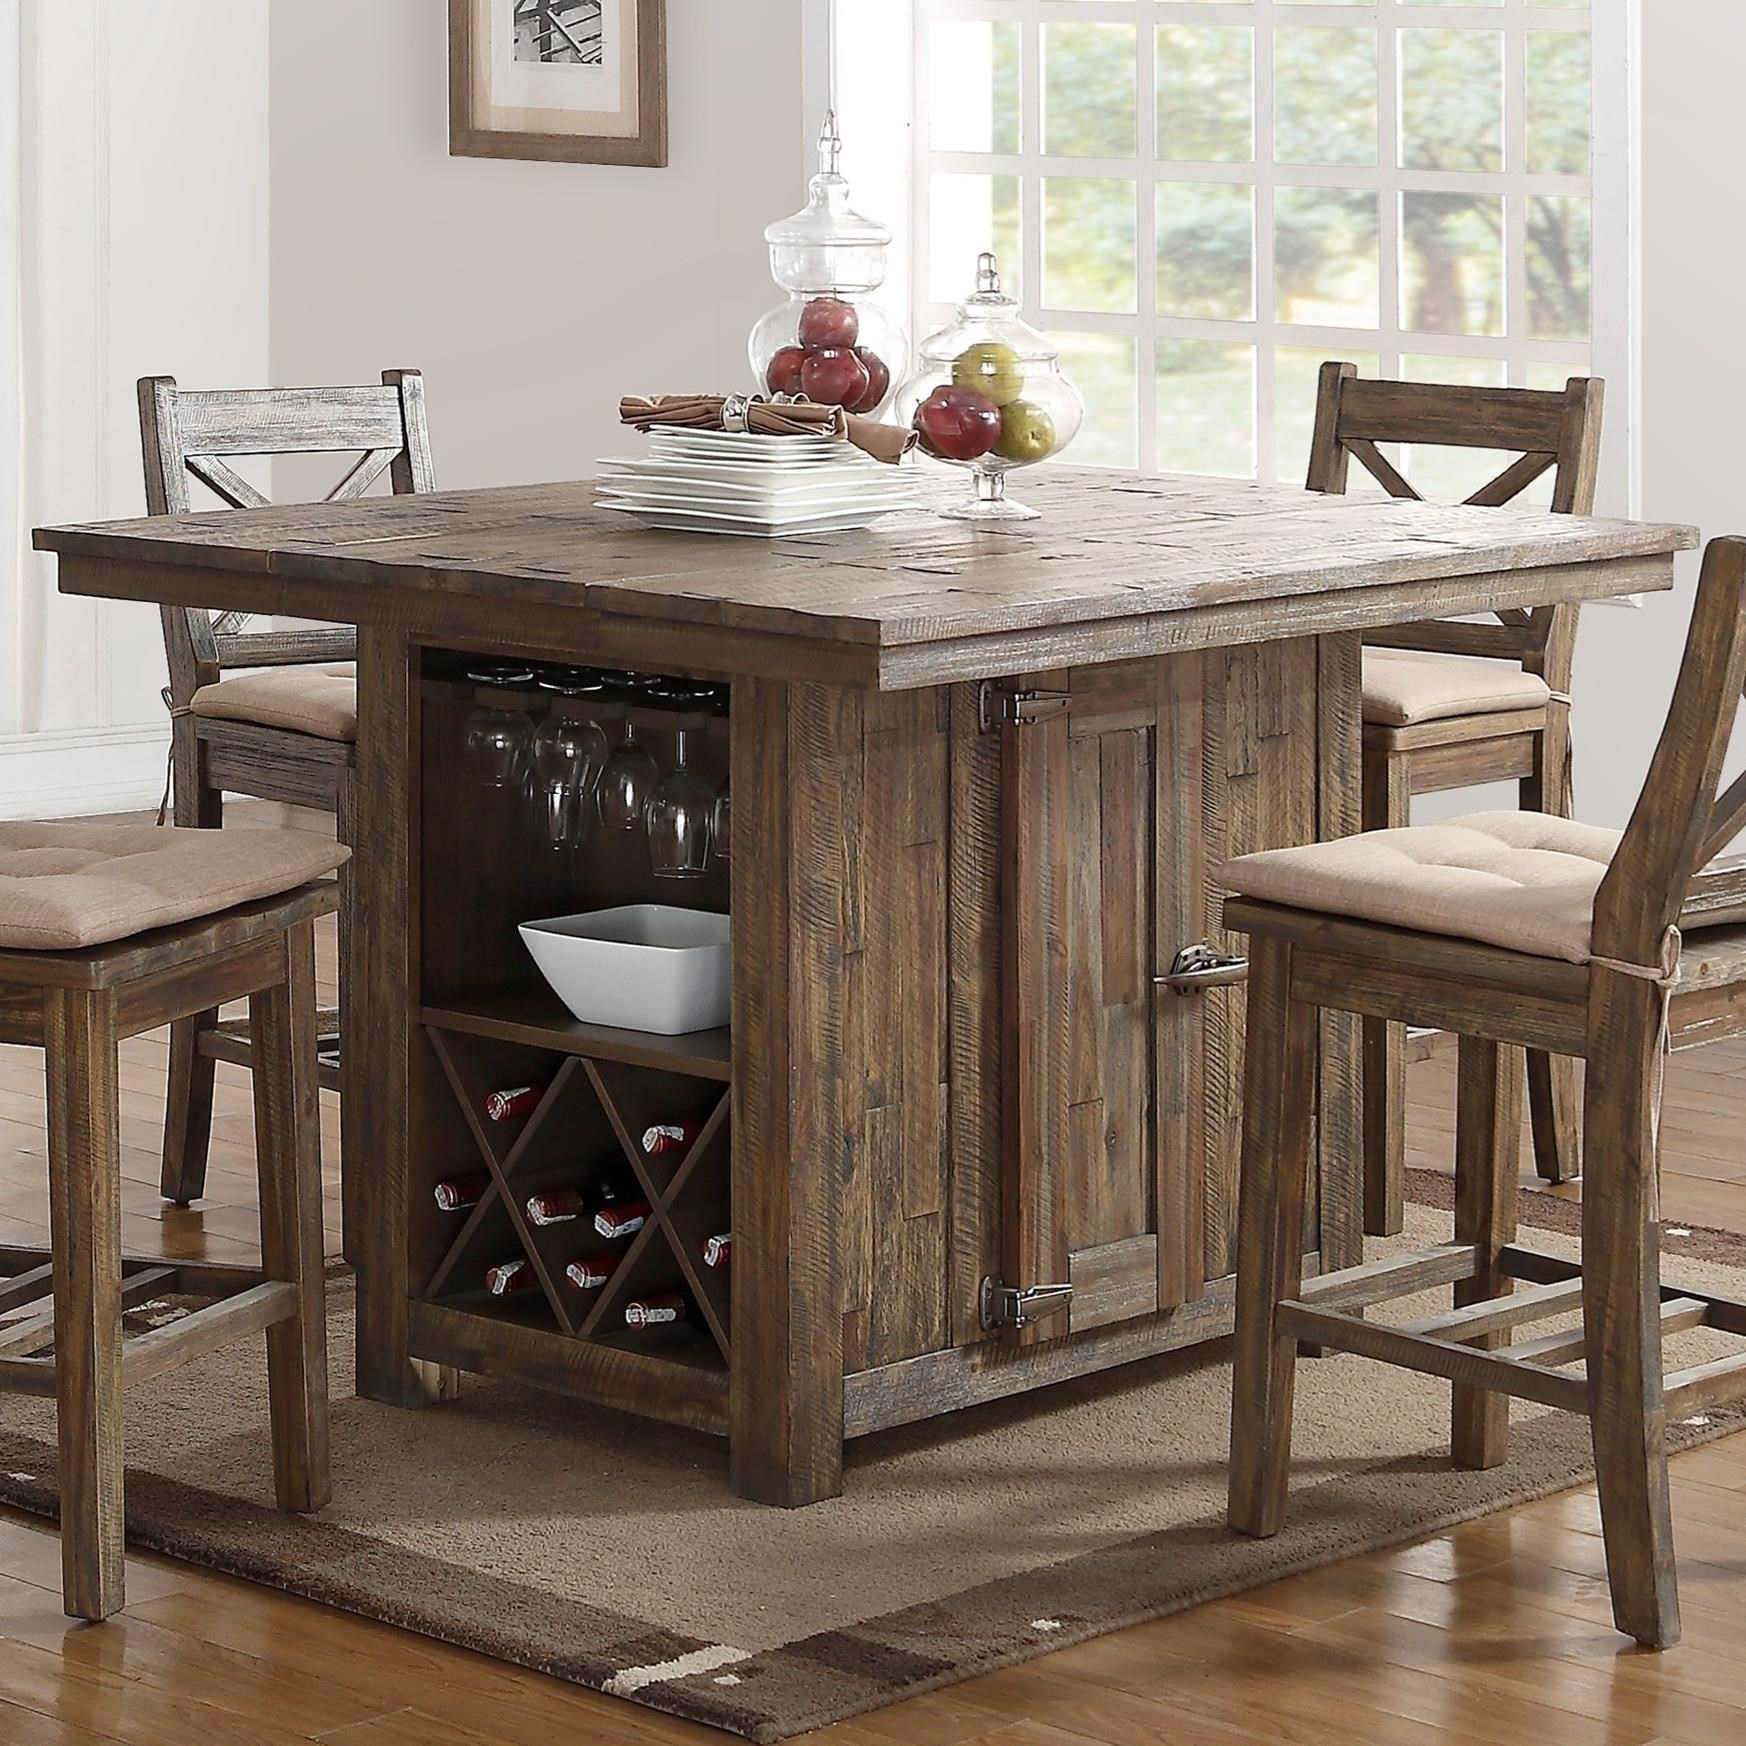 Bar Tables With Storage New in raleigh kitchen cabinets Home Decorating